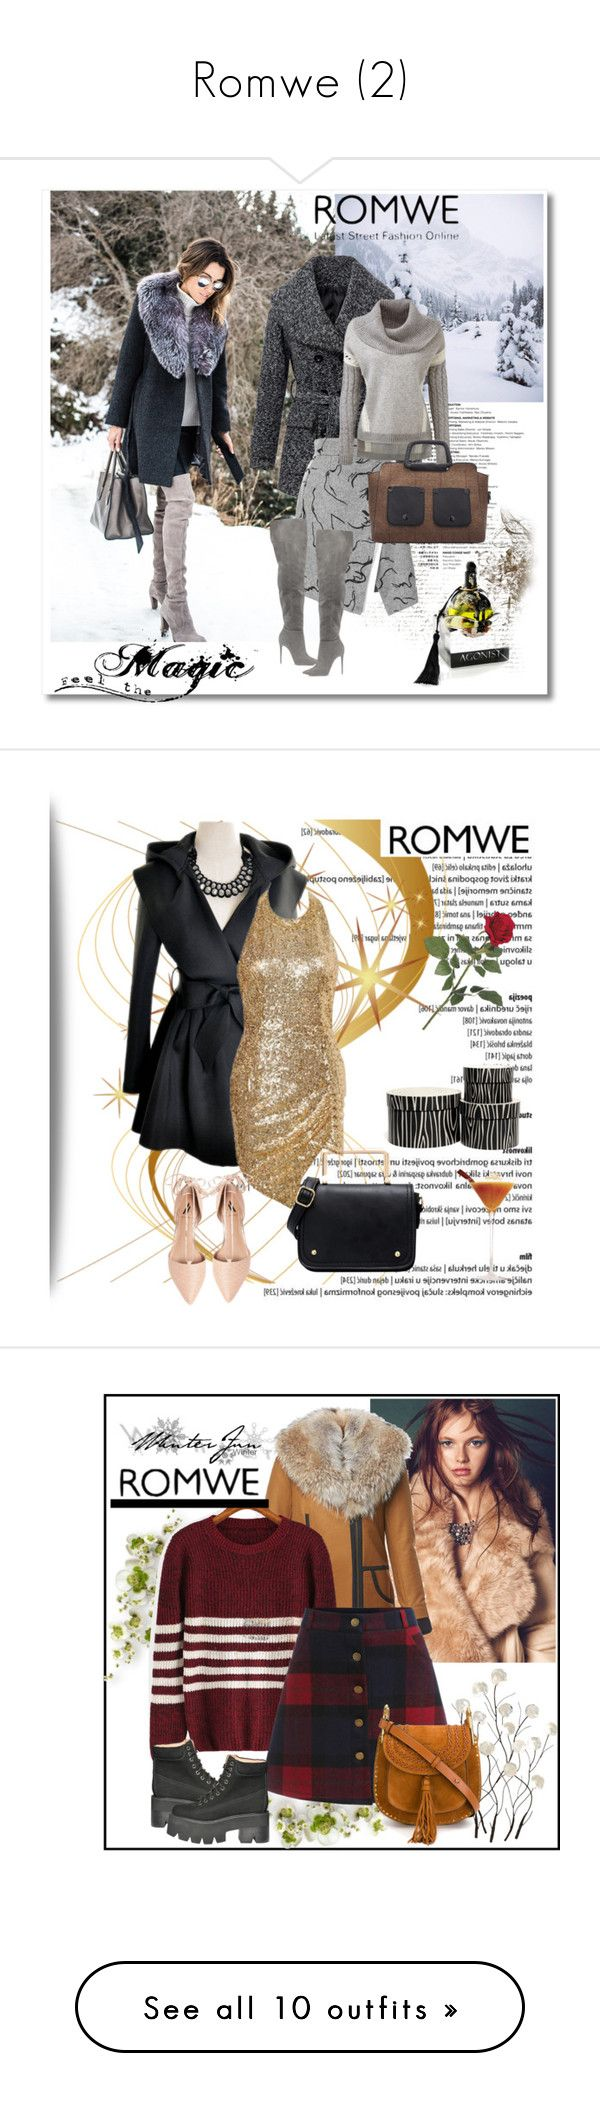 """""""Romwe (2)"""" by aida-1999 ❤ liked on Polyvore featuring women's clothing, women's fashion, women, female, woman, misses, juniors, Ava & Aiden, H&M and Avery"""